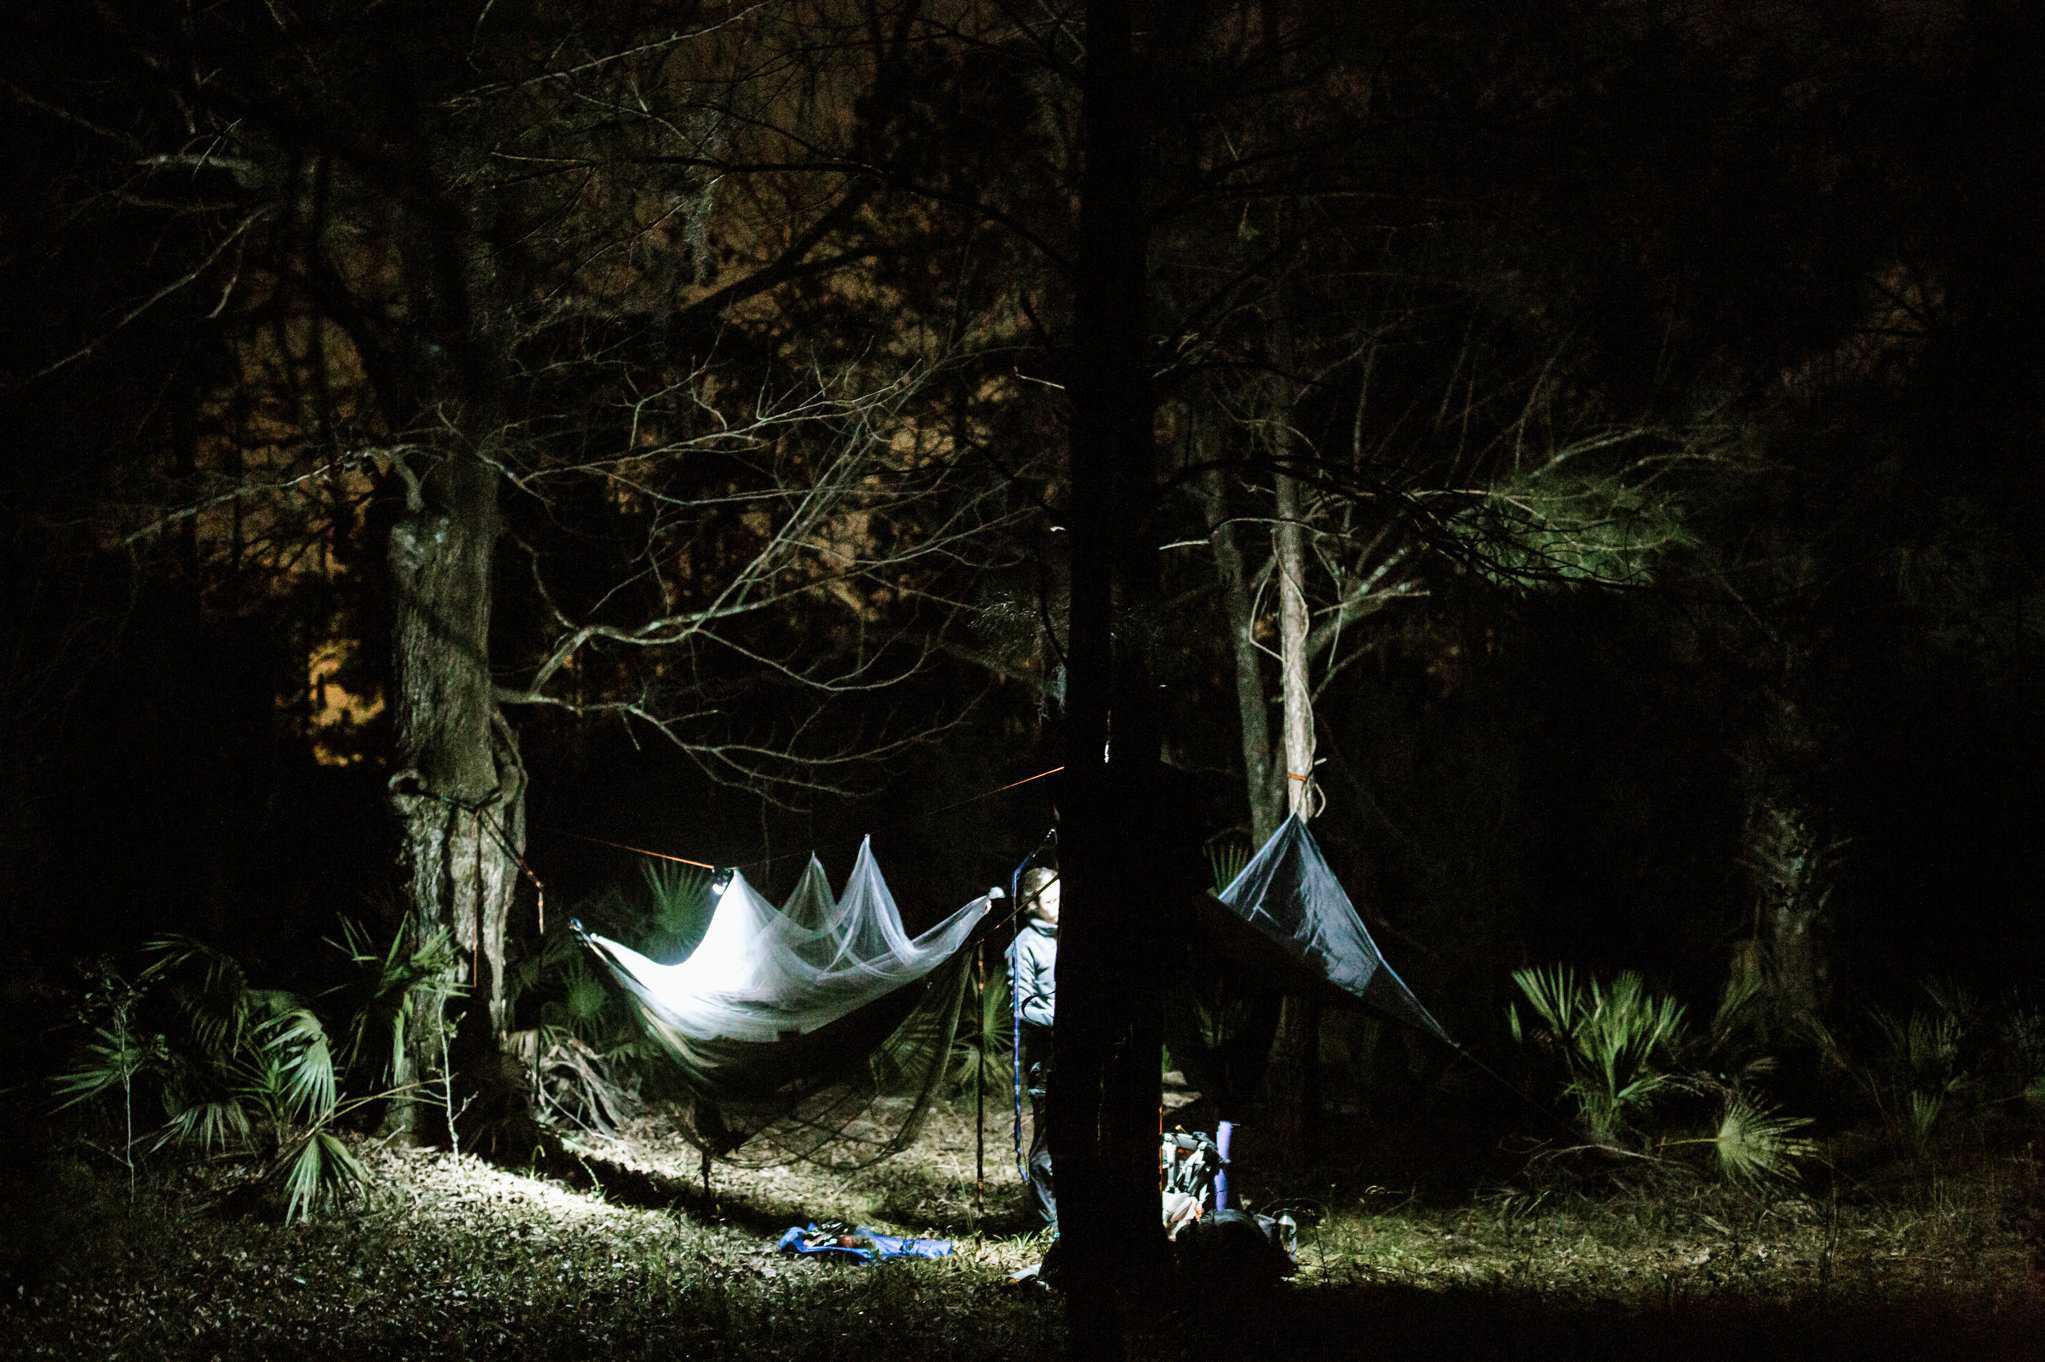 outdoor backpacking adventure photography- Cumberland Island National Seashore 2017 011.jpg